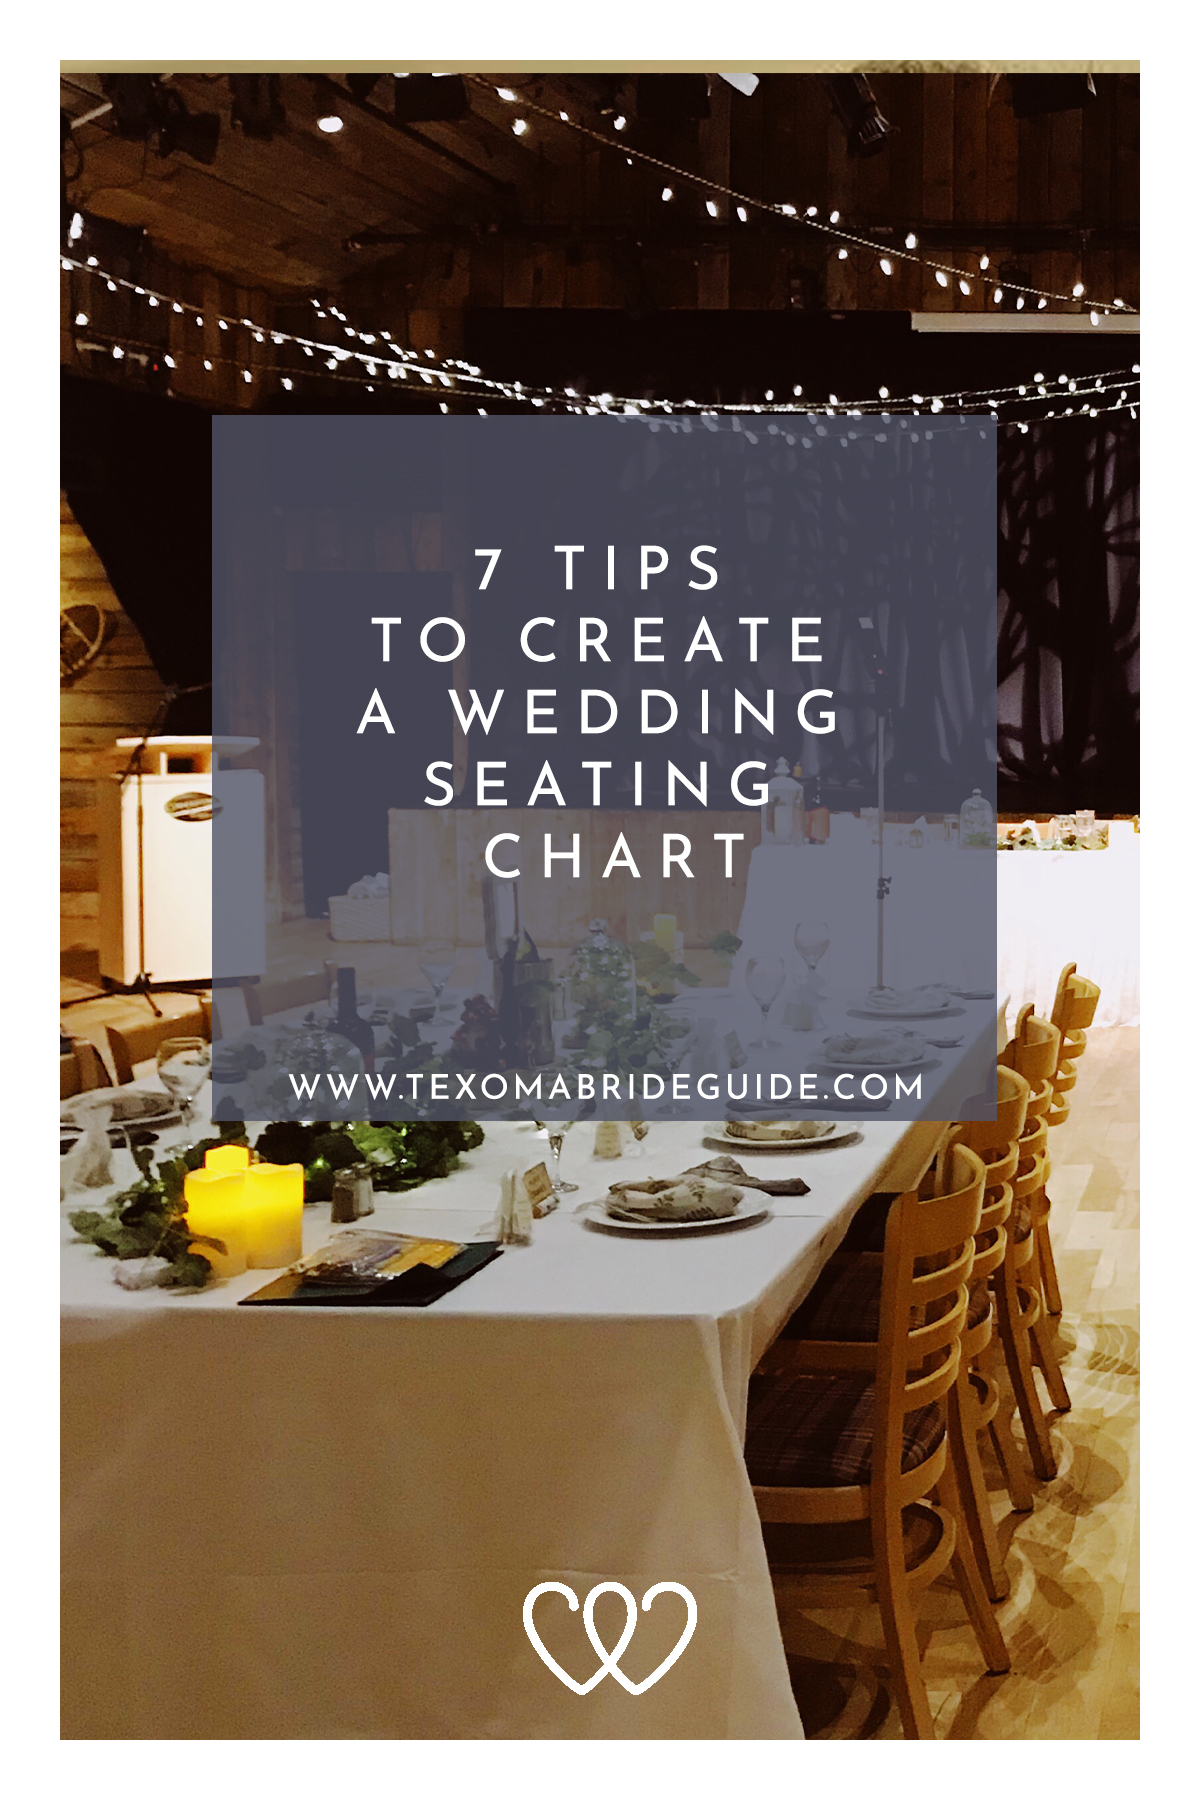 7 Tips To Create A Wedding Seating Chart   Texoma Bride Guide Blog